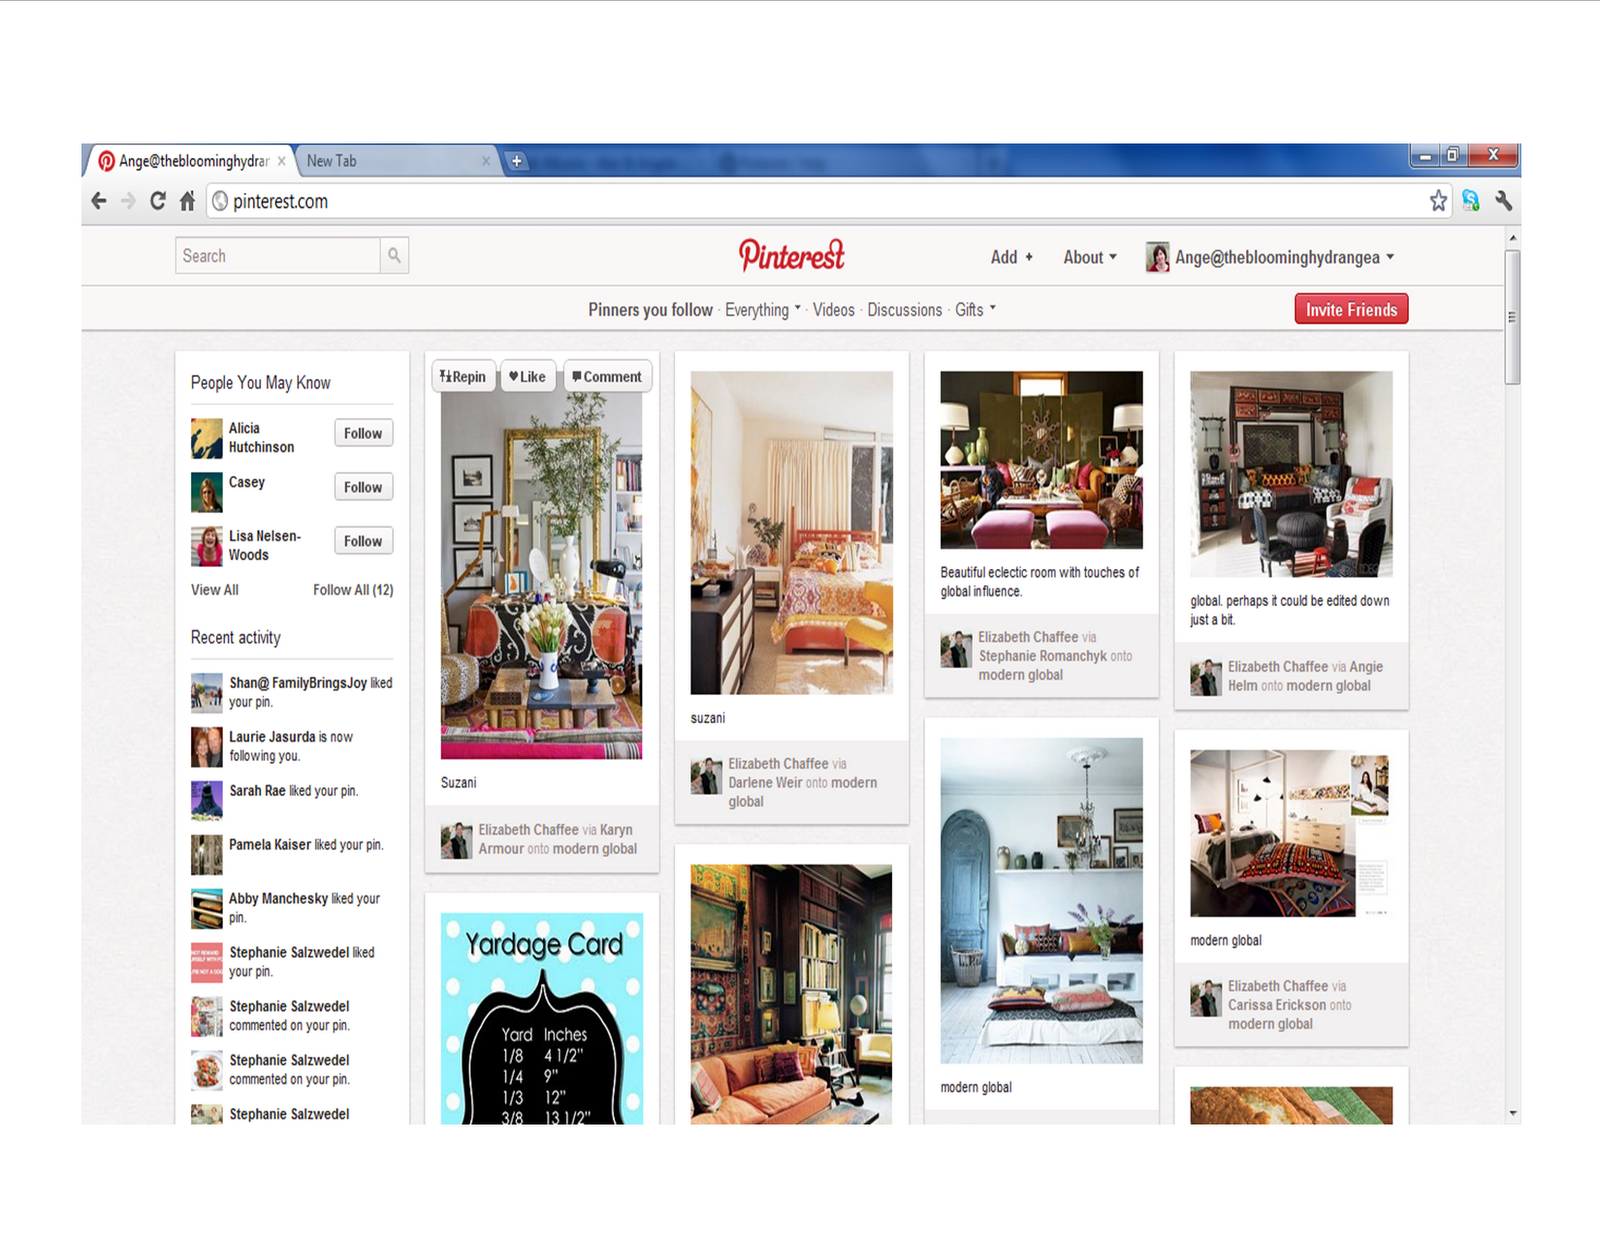 Global home on pinterest - If I Don T Want To Browse What Has Recently Been Pinned By People I Am Following I Just Click On The Word Everything Located Under The Pinterest That Is In